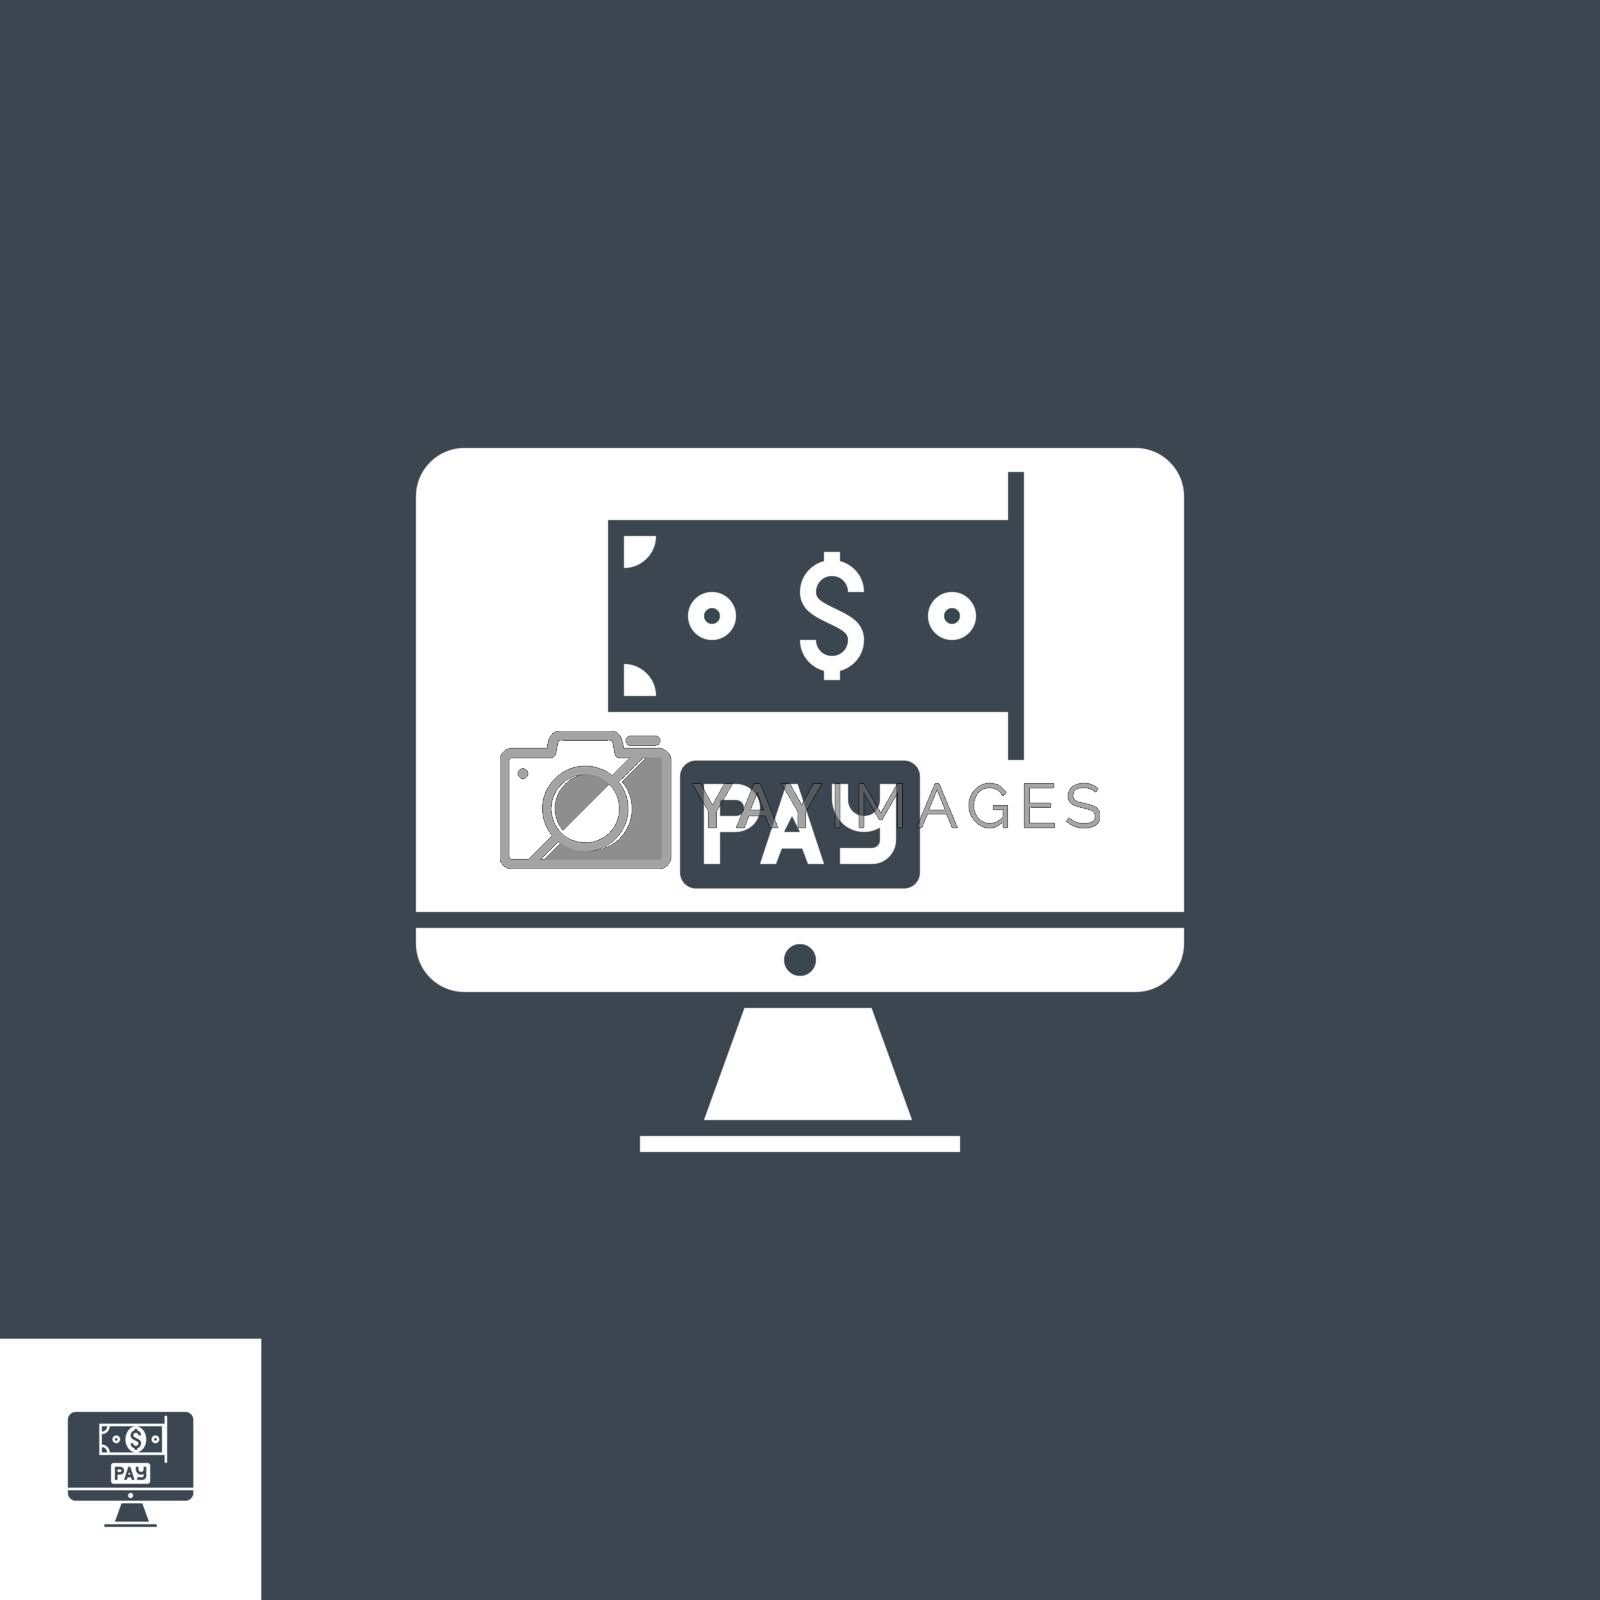 On Pay related vector glyph icon. by smoki